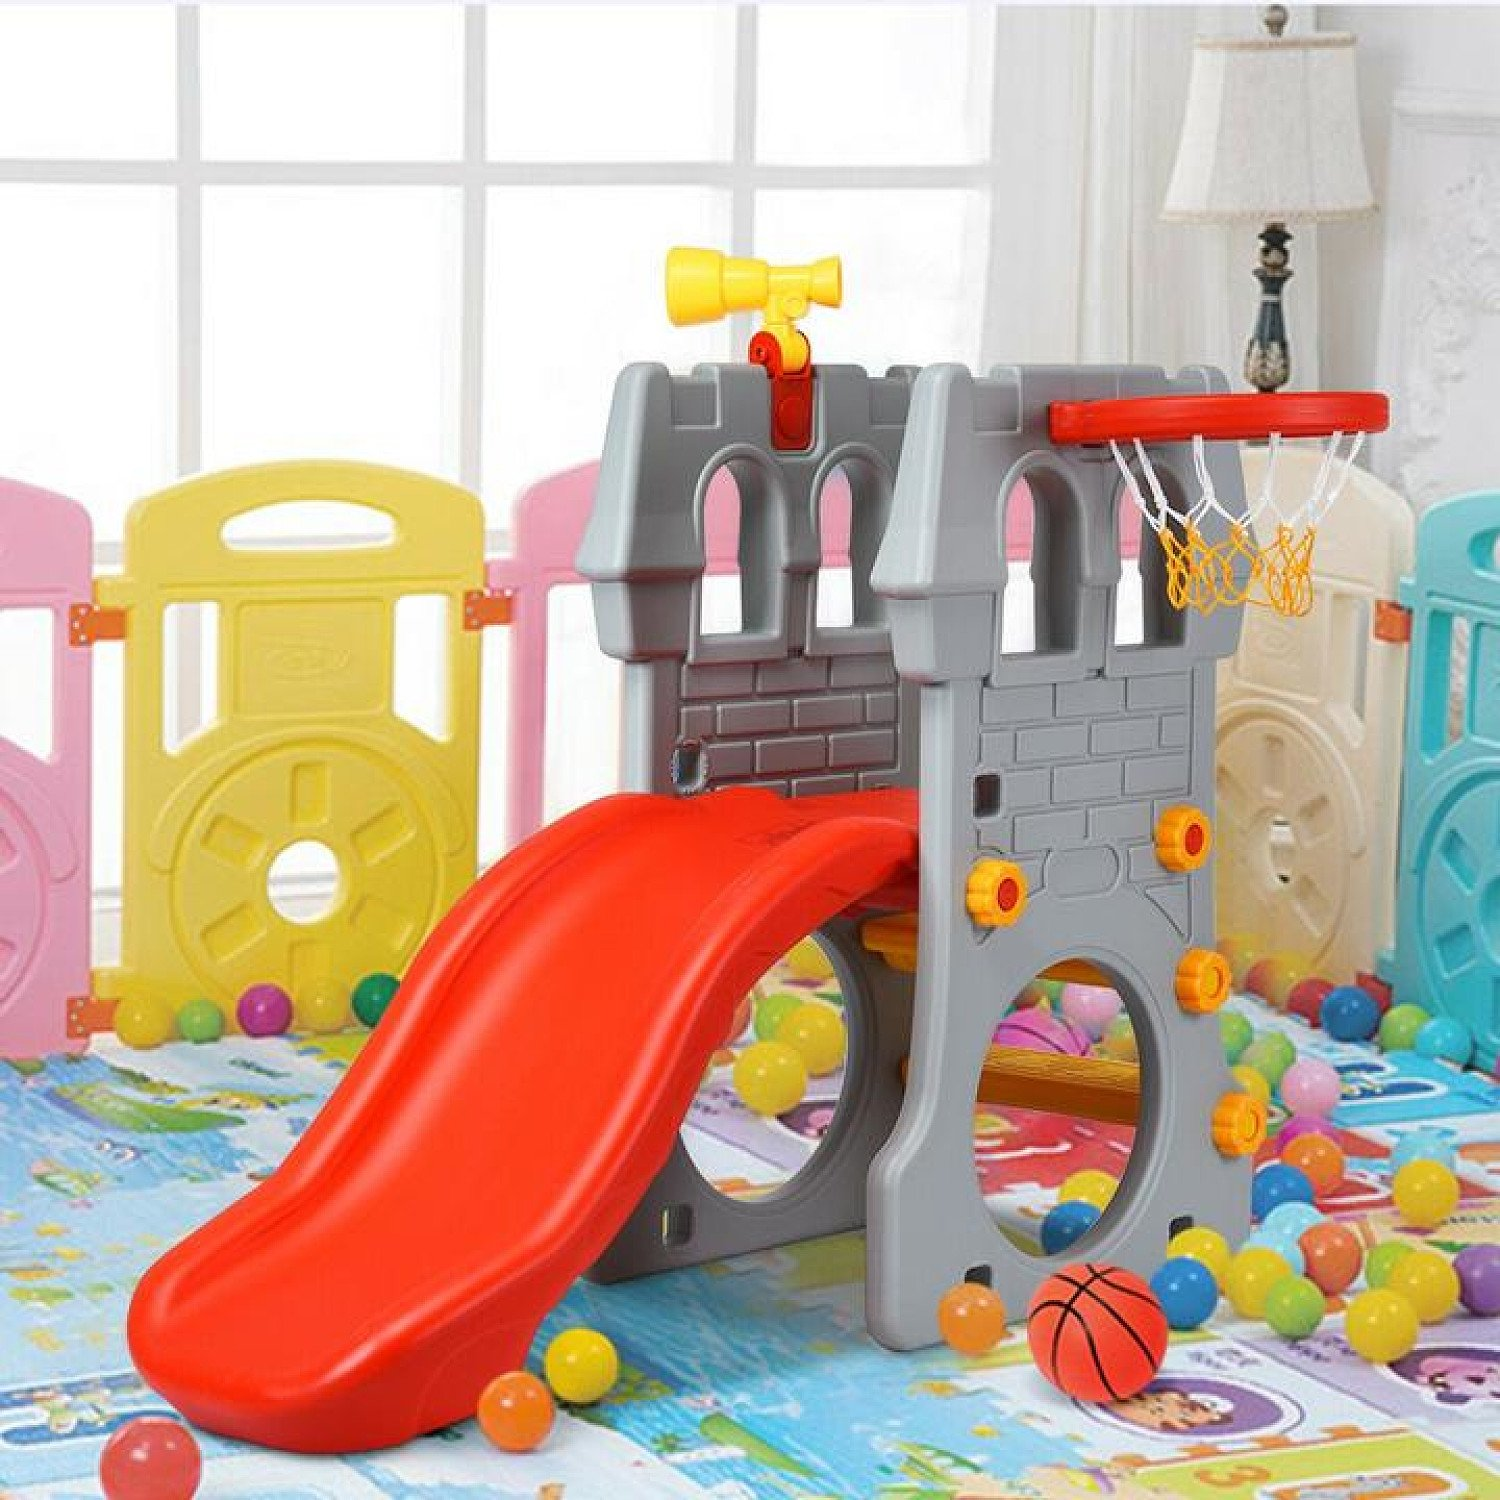 Toddler Climber Castle Slide Set with Basketball Hoop for In / Outdoor Free Postage